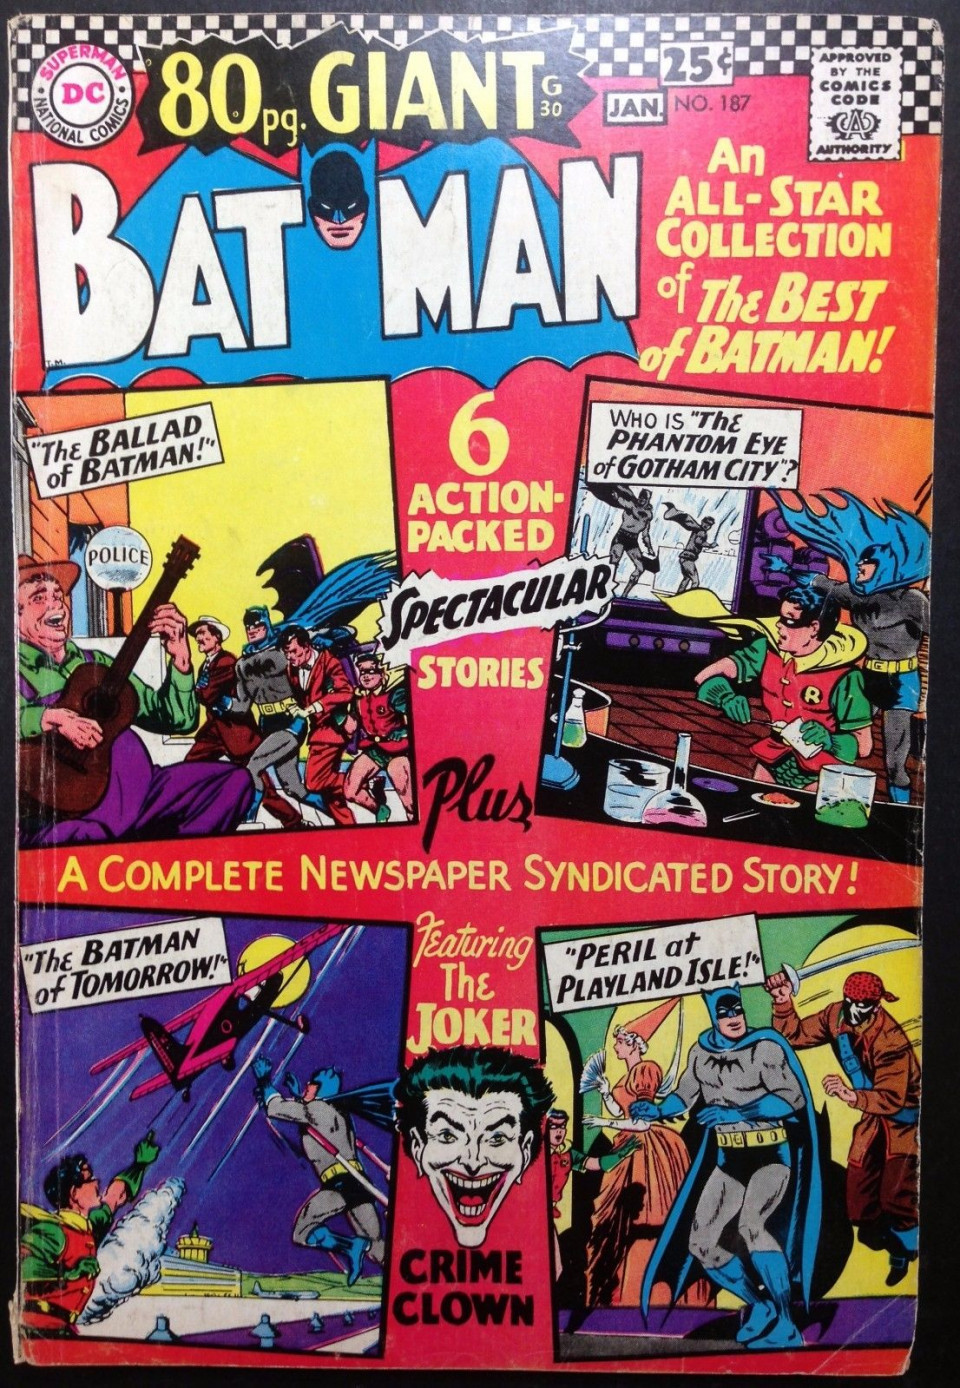 3d2e9d84c5b4 BATMAN (1940)  187 VG+ (4.5) Joker cover and story 80 page giant